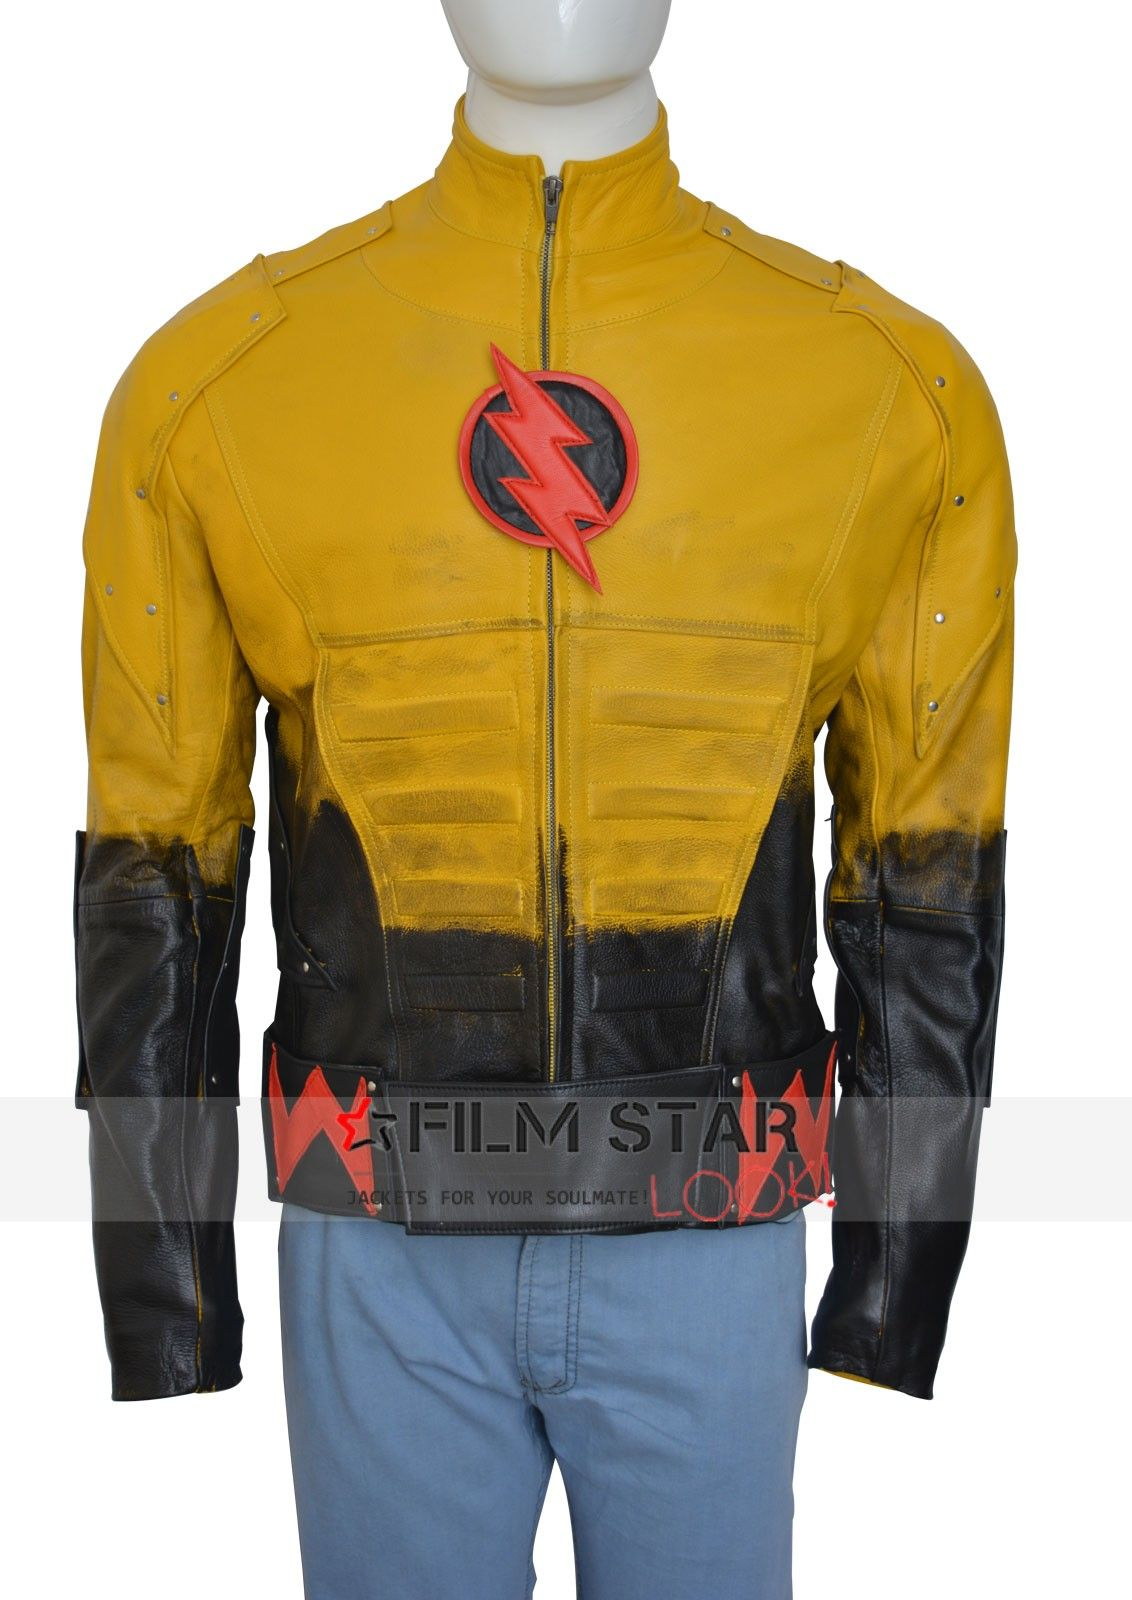 Leather jacket cost - Find This Pin And More On Filmstarlook Leather Jackets